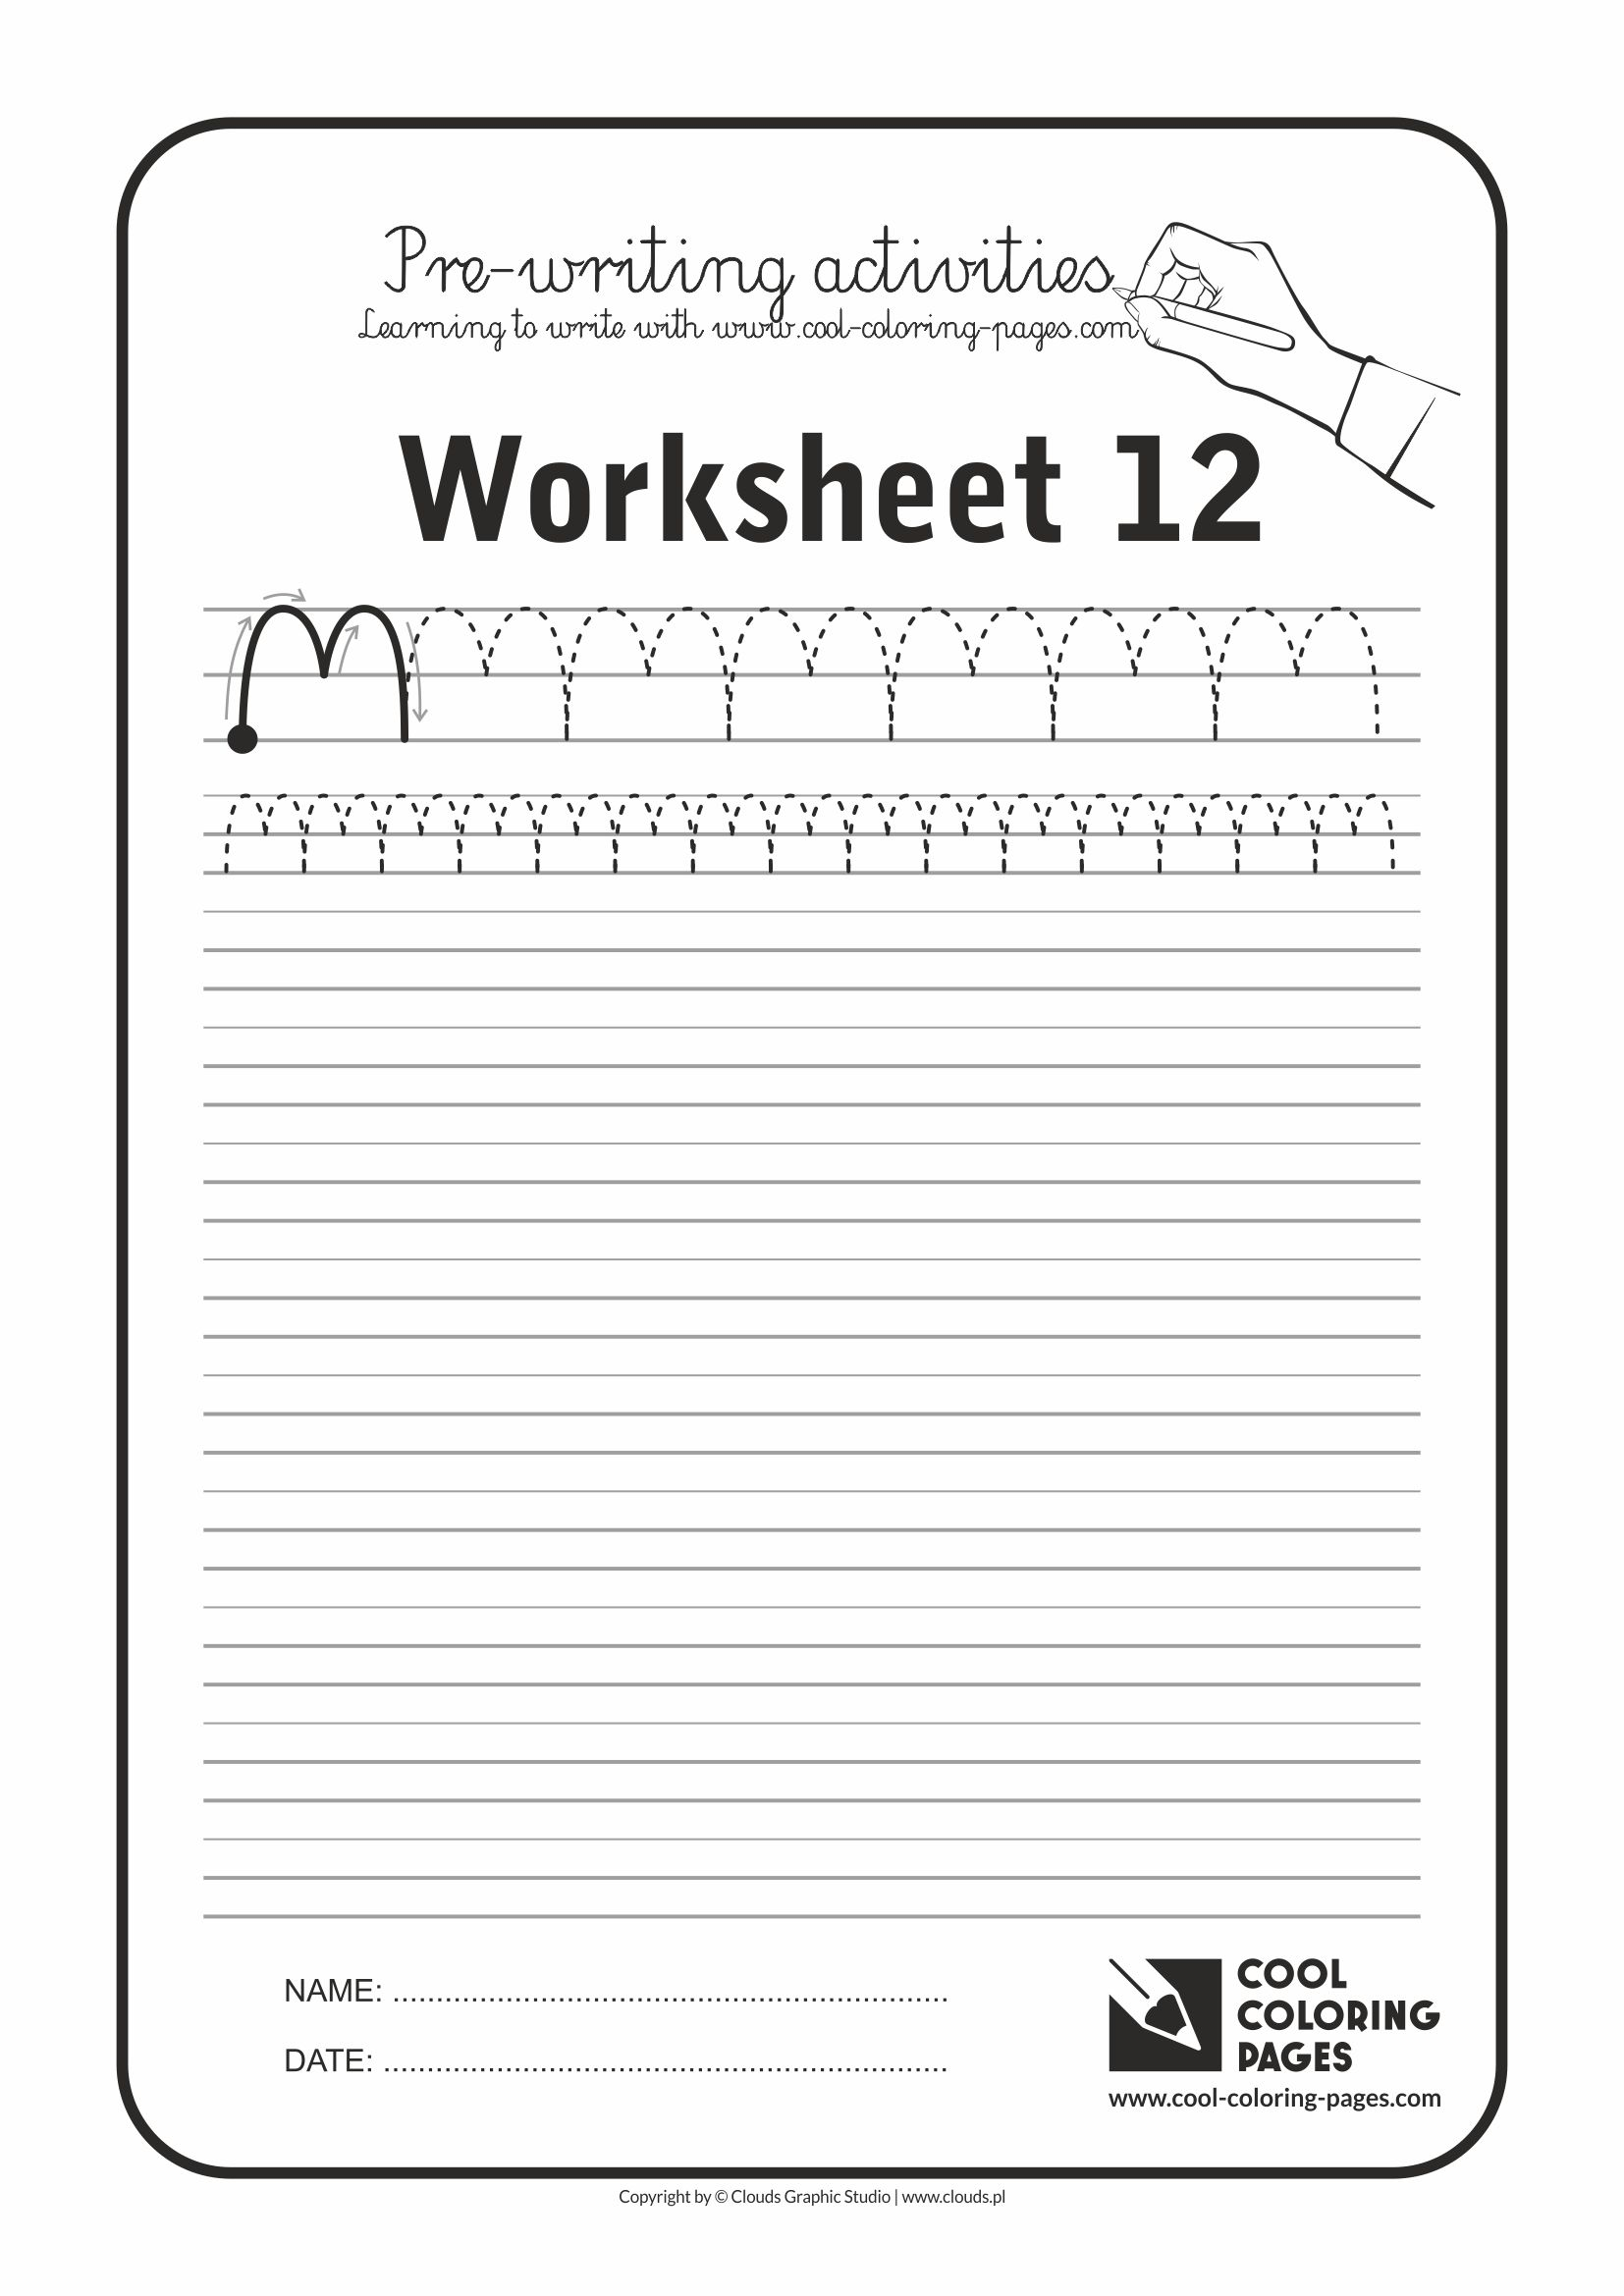 Cool Coloring Pages / Pre-writing activities / Worksheet no.12